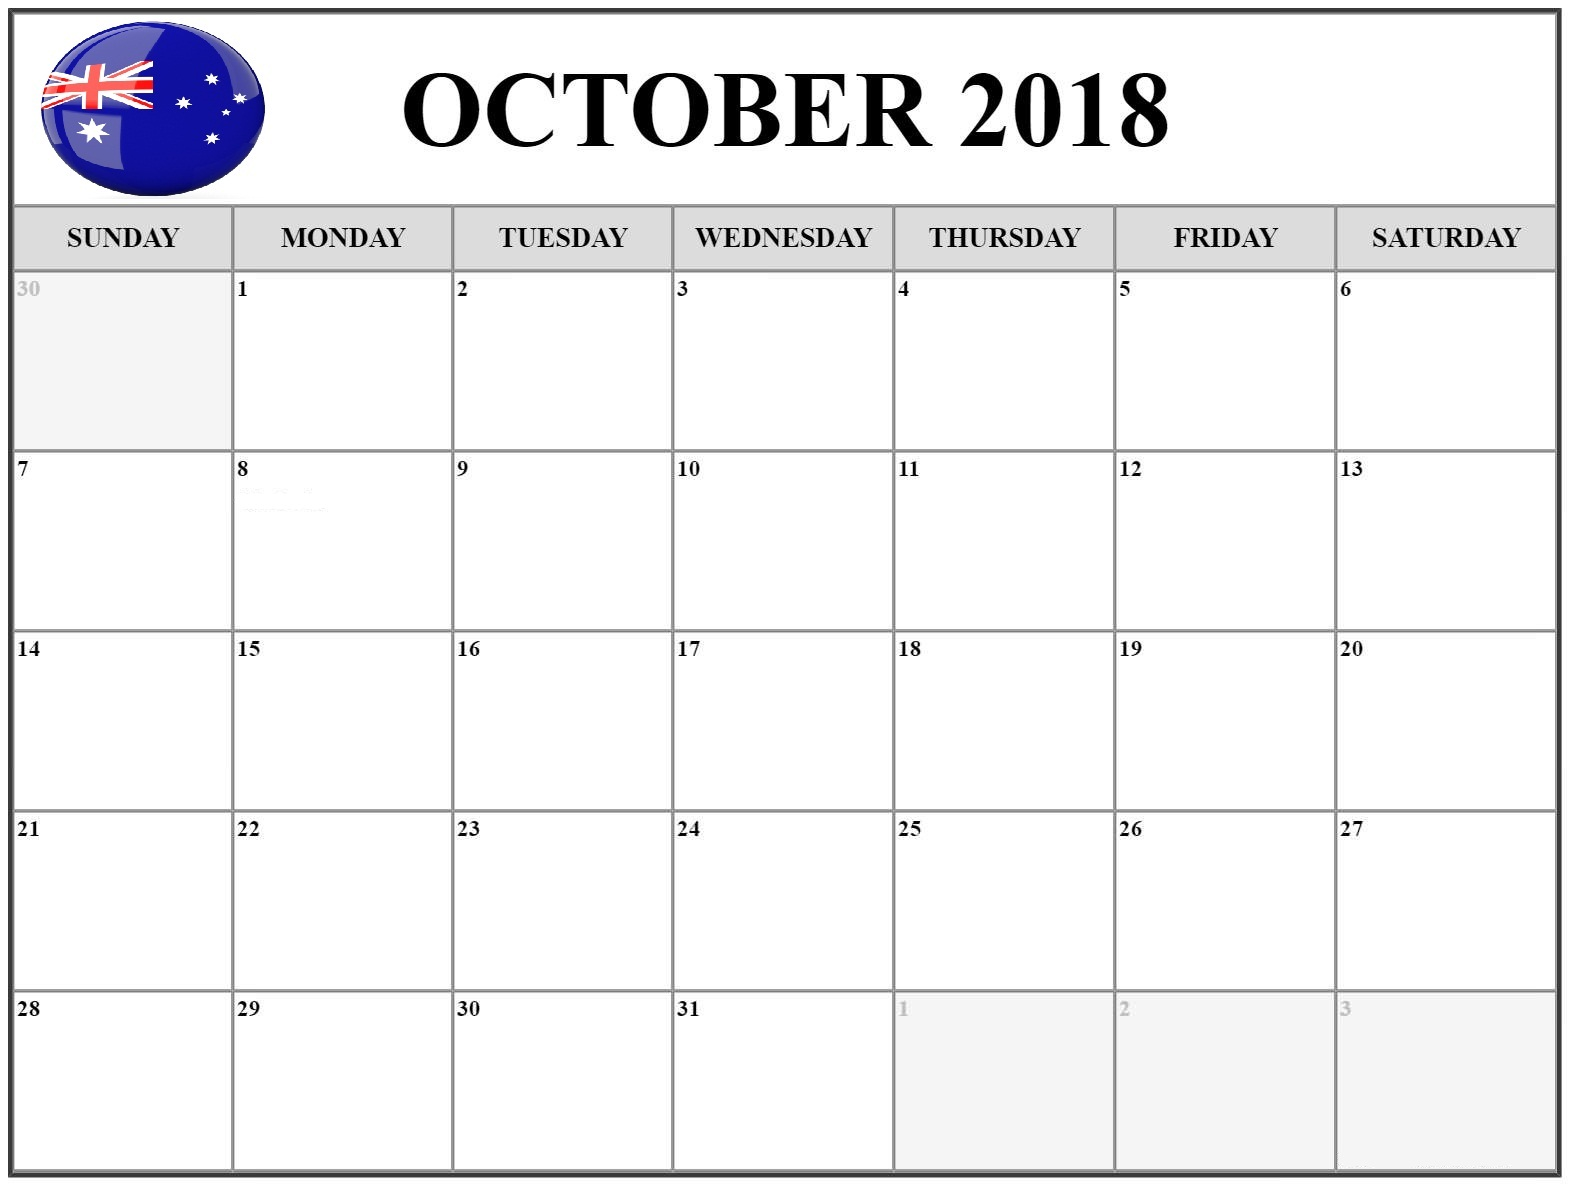 October 2018 Calendar Australia School Holidays